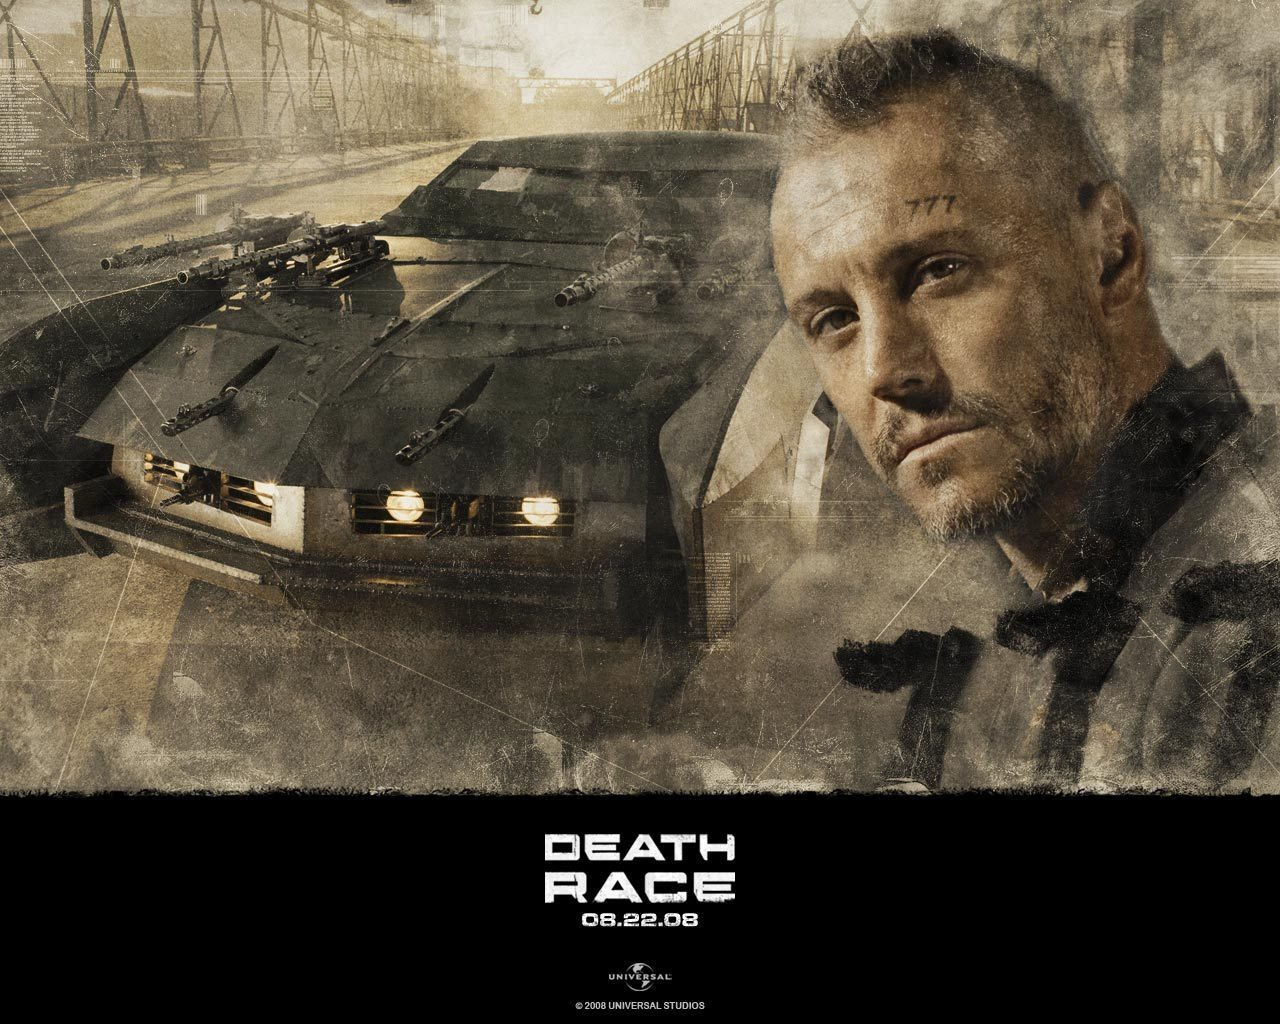 Upcoming movies death race